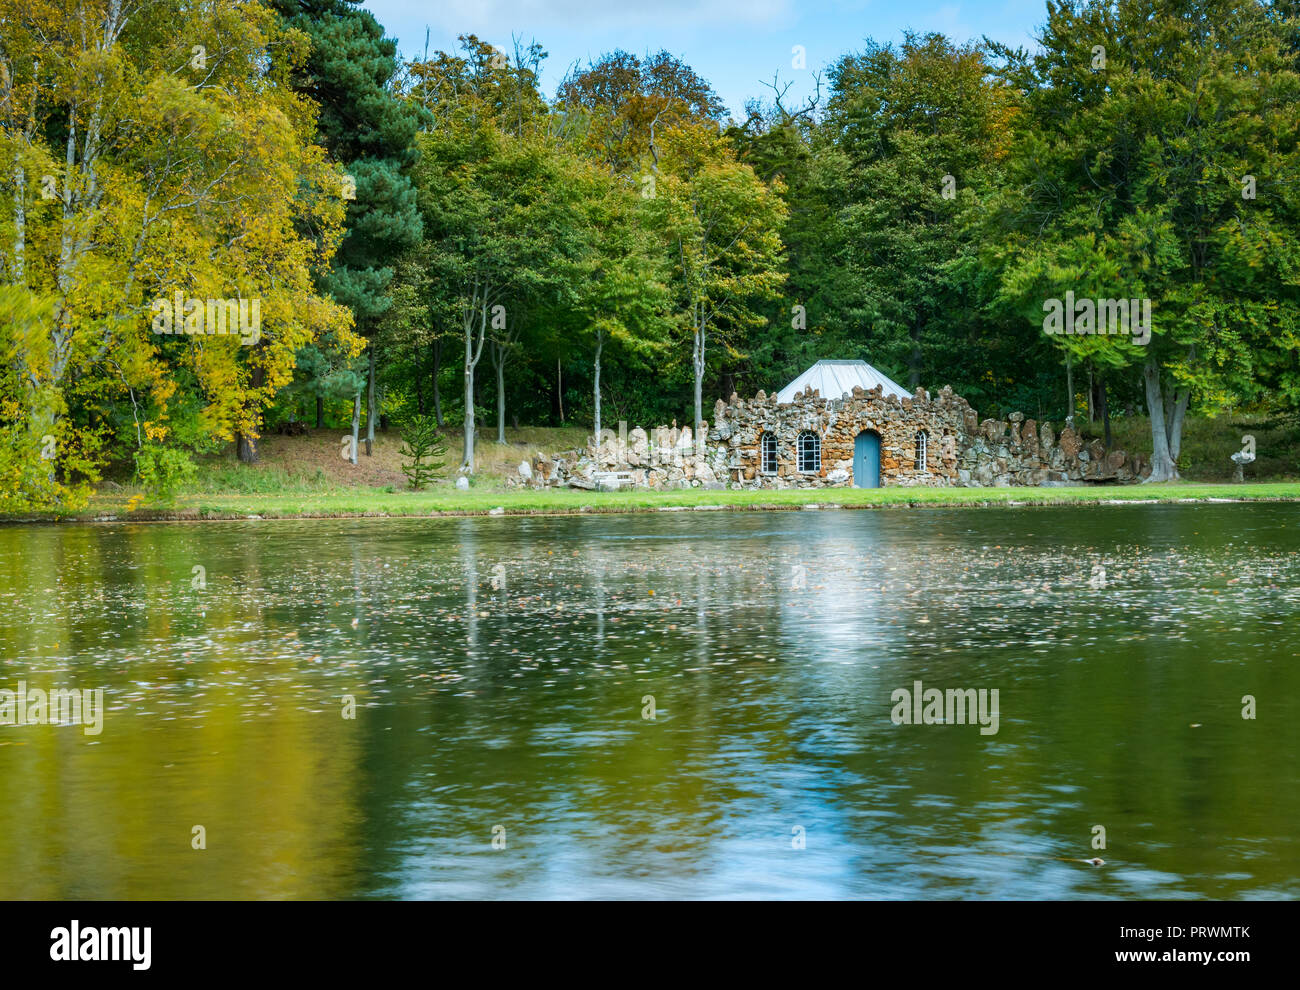 Gosford House Pleasure Grounds and Policies, Longniddry, East Lothian, Scotland, United Kingdom, 4th October 2018. UK Weather: Autumn colours in the mature trees in Gosford House estate are lit by sunshine. The quirky rubble stone built curling lodge by the artificial lake - Stock Image